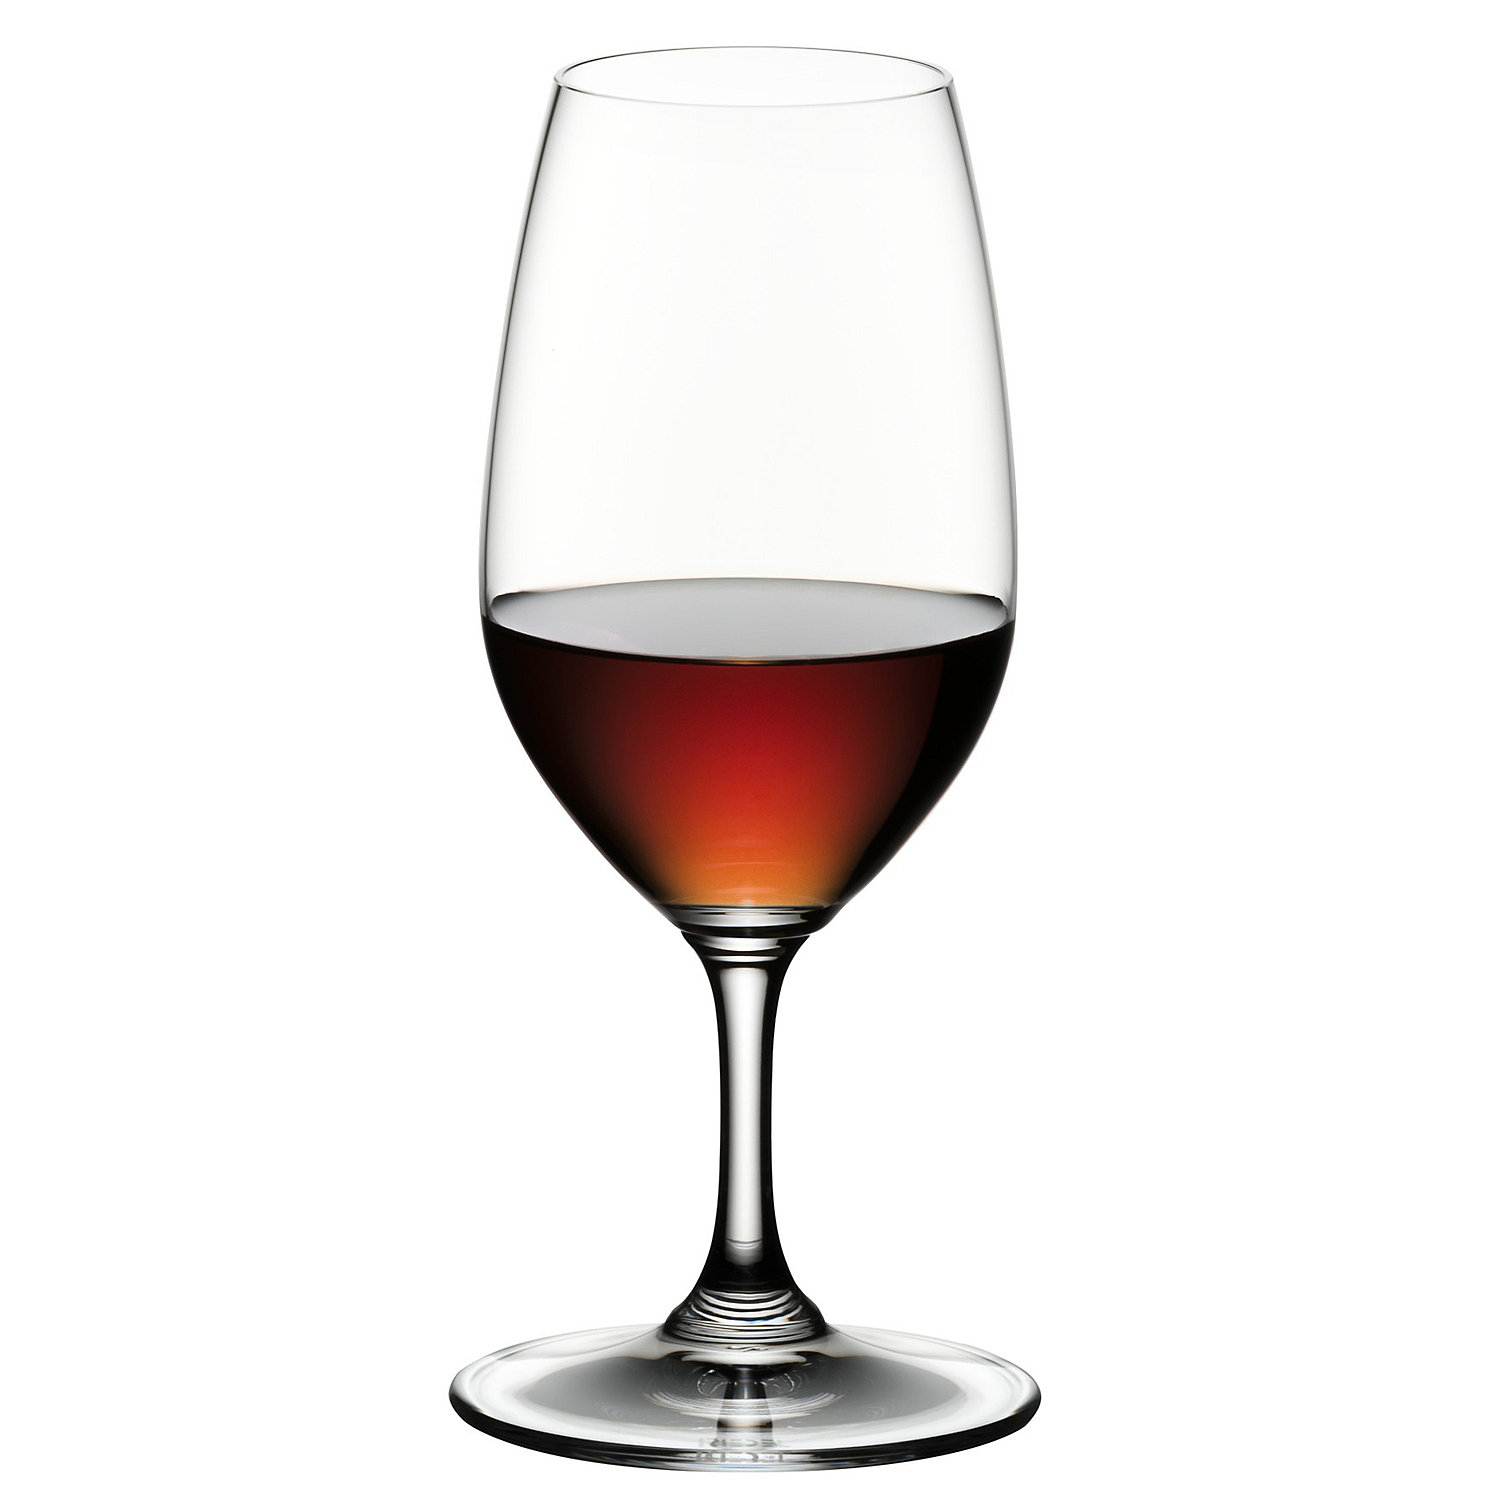 Weinkelch Glas Riedel Vinum Port Glasses Set Of 2